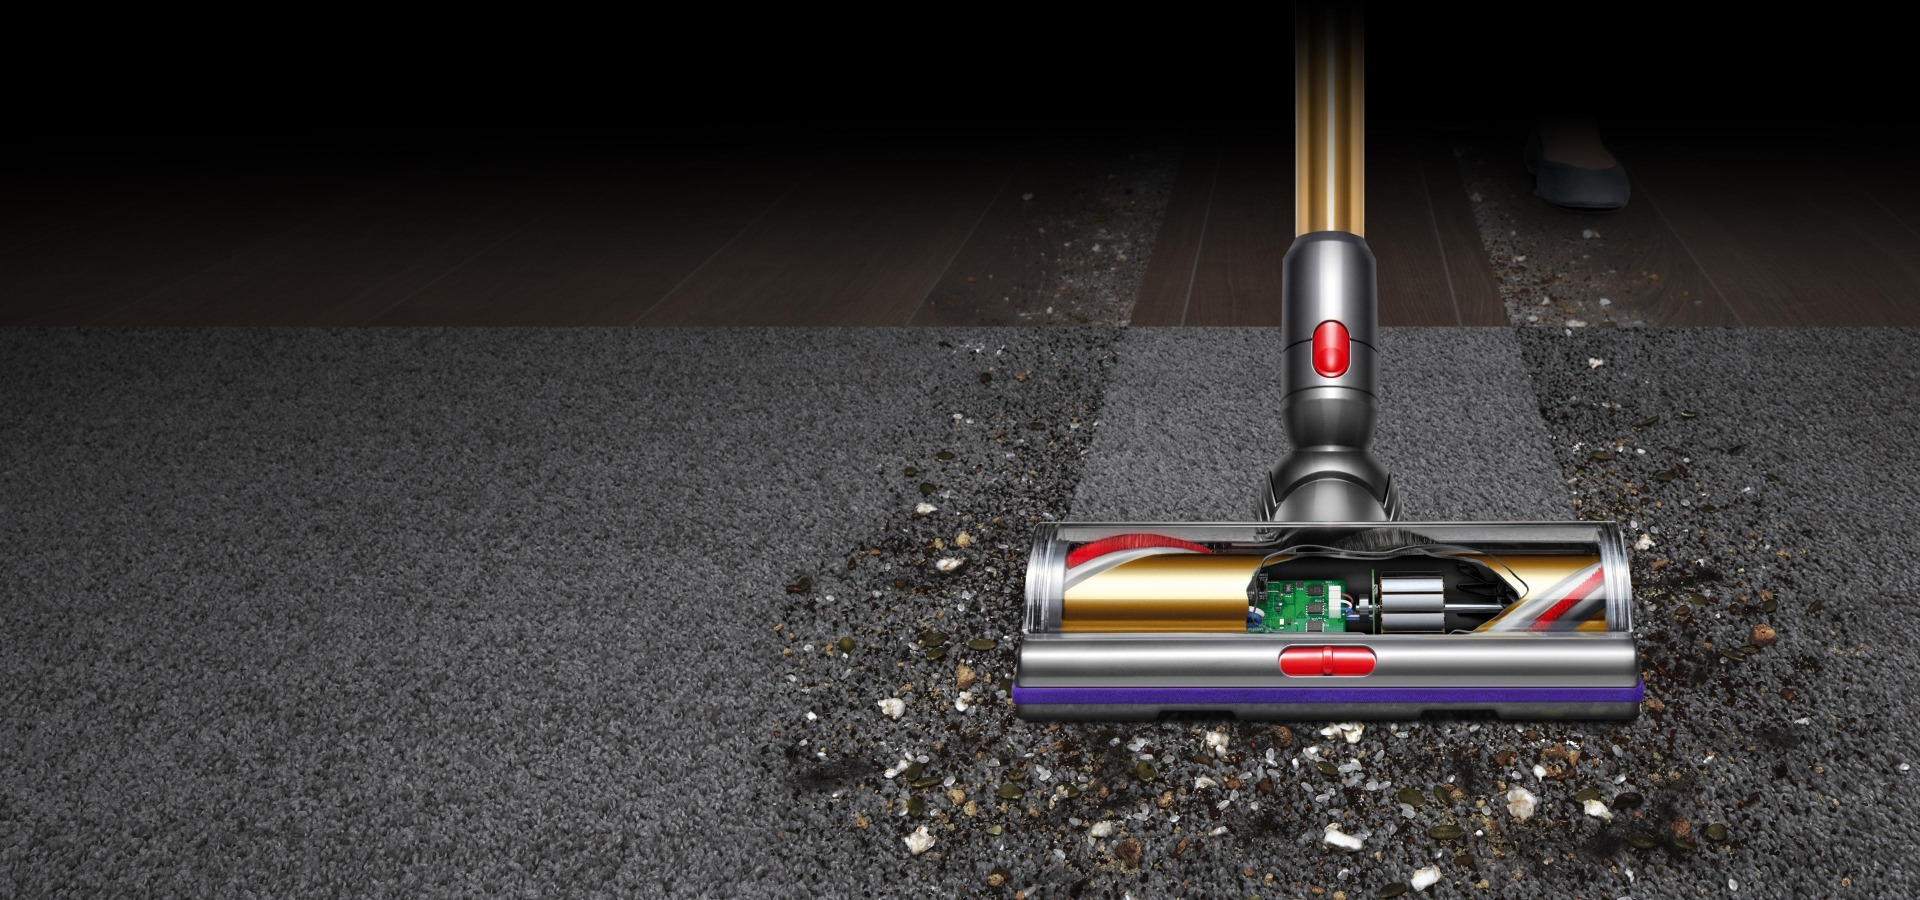 Dyson V11 intelligently adapts to different floor types